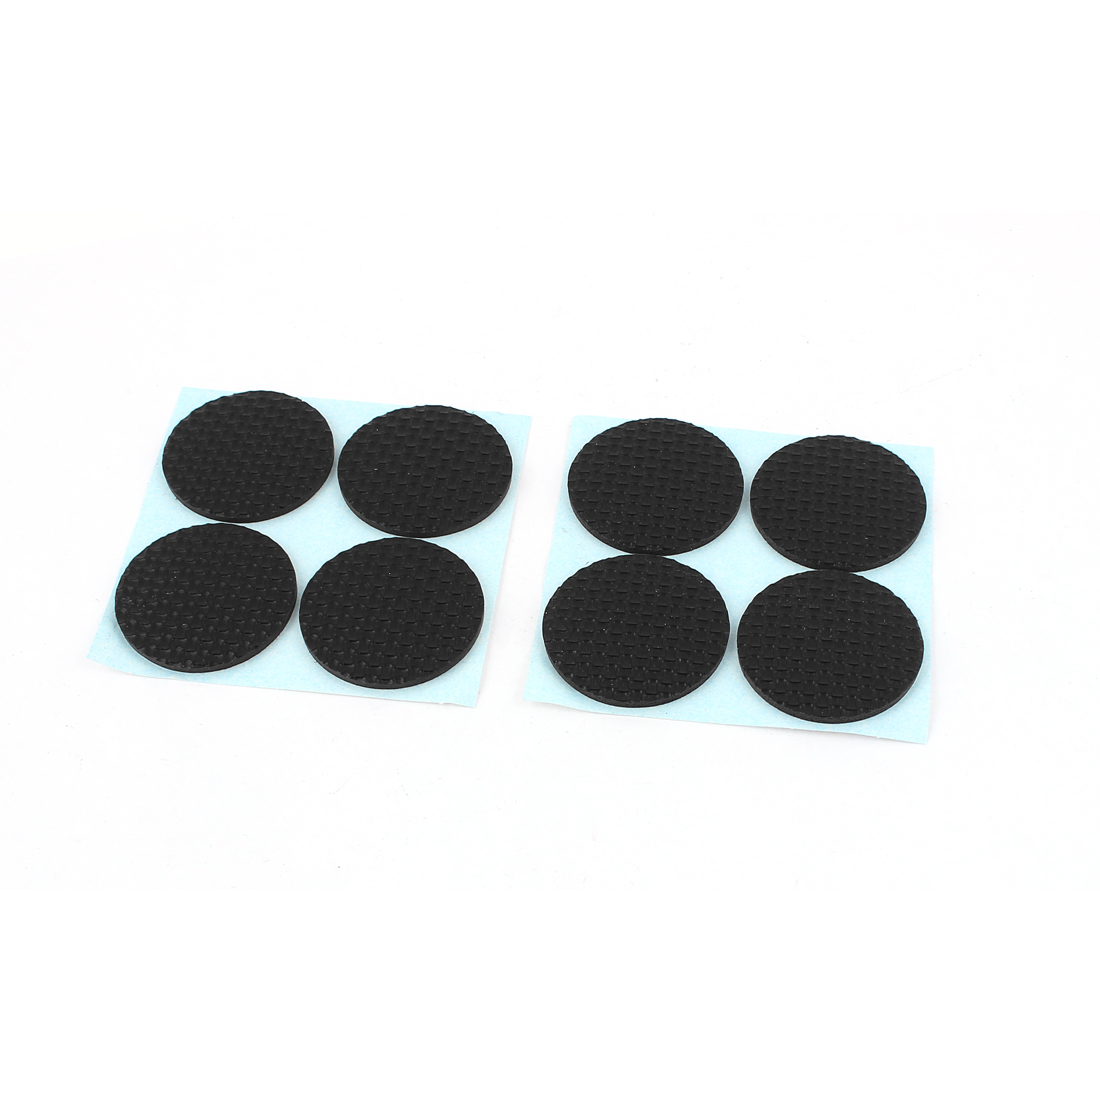 Furniture Cabinet Round Self-adhesive Protection Cushion Pads 8 Pcs Black